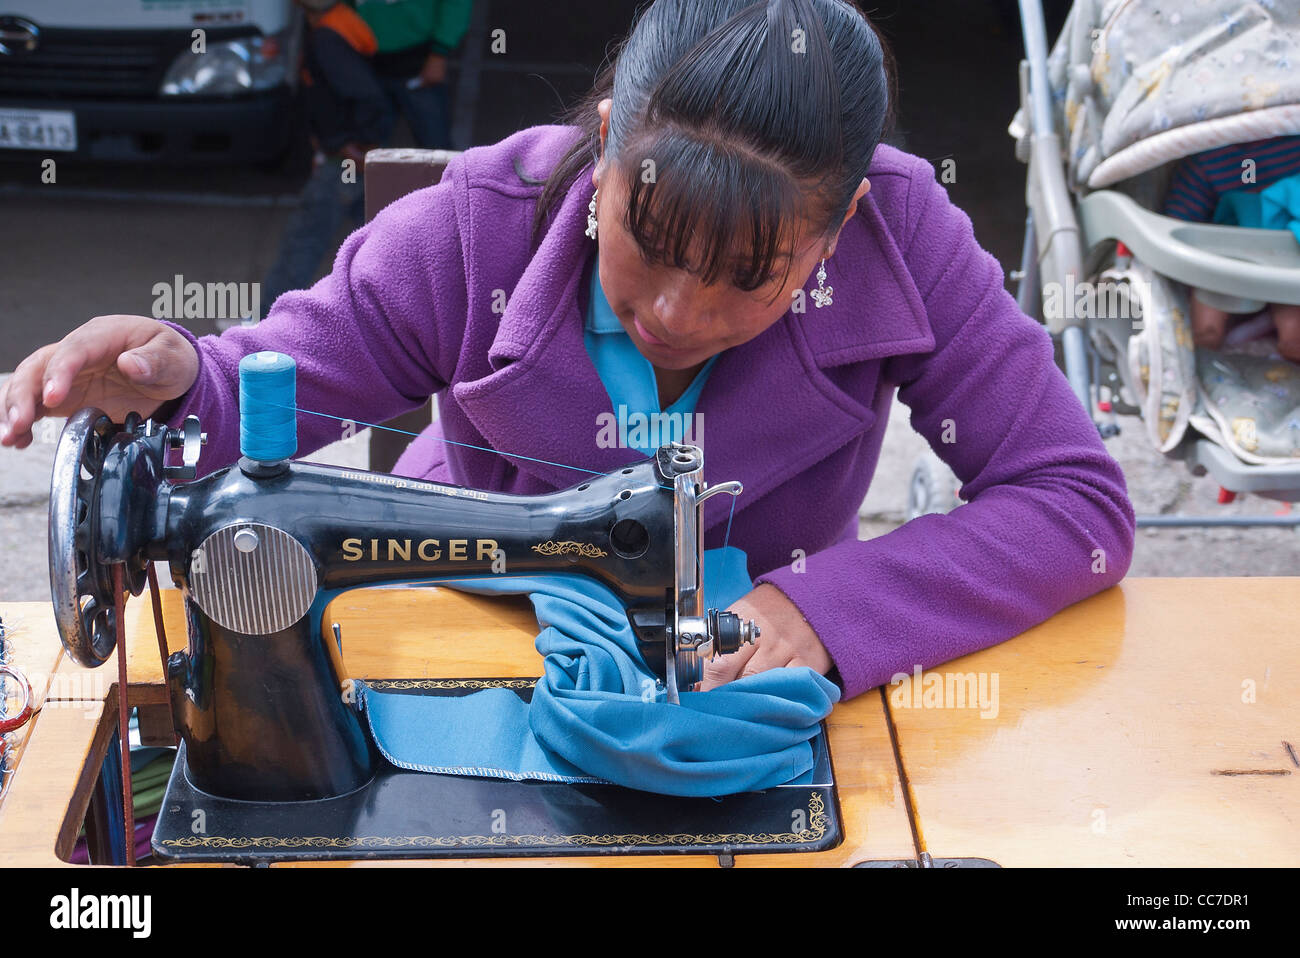 A teenager sews on her old style Singer sewing machine in the outdoor market in Saquisili, Ecuador. - Stock Image